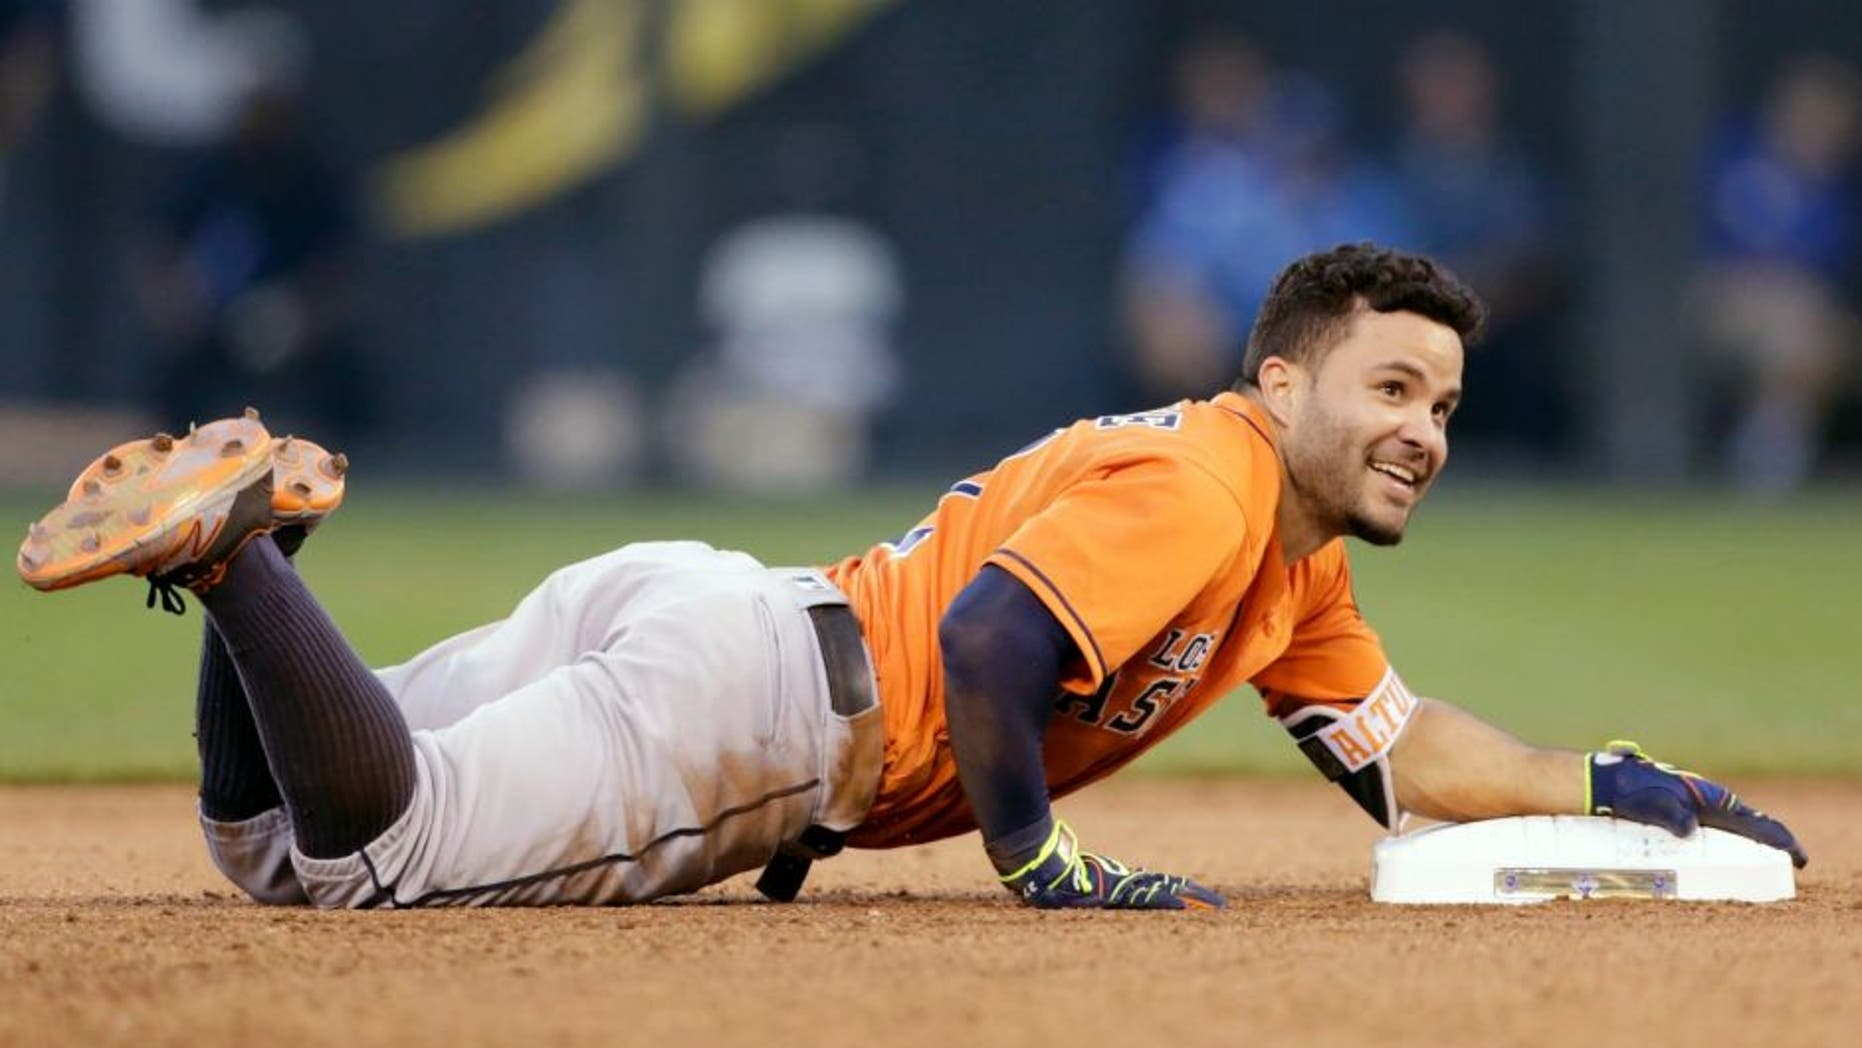 Houston Astros Jose Altuve reacts after tripping over second base while attempting a triple after a hit in the sixth inning of a baseball game against the Kansas City Royals at Kauffman Stadium in Kansas City, Mo., Saturday, June 25, 2016. The Astros beat the Royals 13-5. (AP Photo/Colin E. Braley)